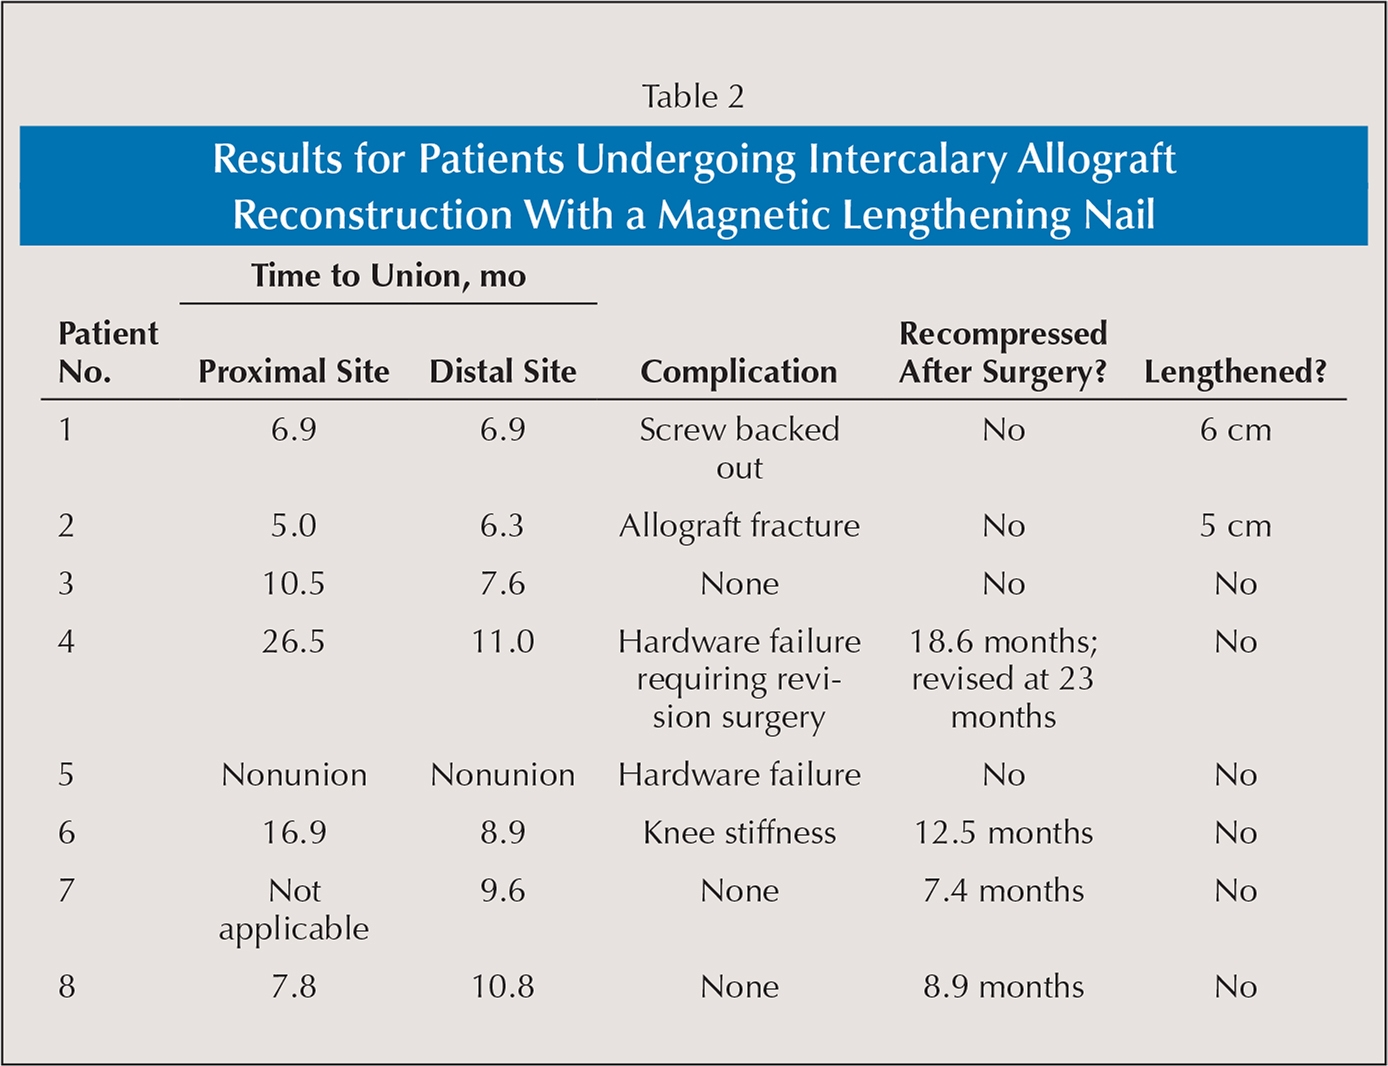 Results for Patients Undergoing Intercalary Allograft Reconstruction With a Magnetic Lengthening Nail